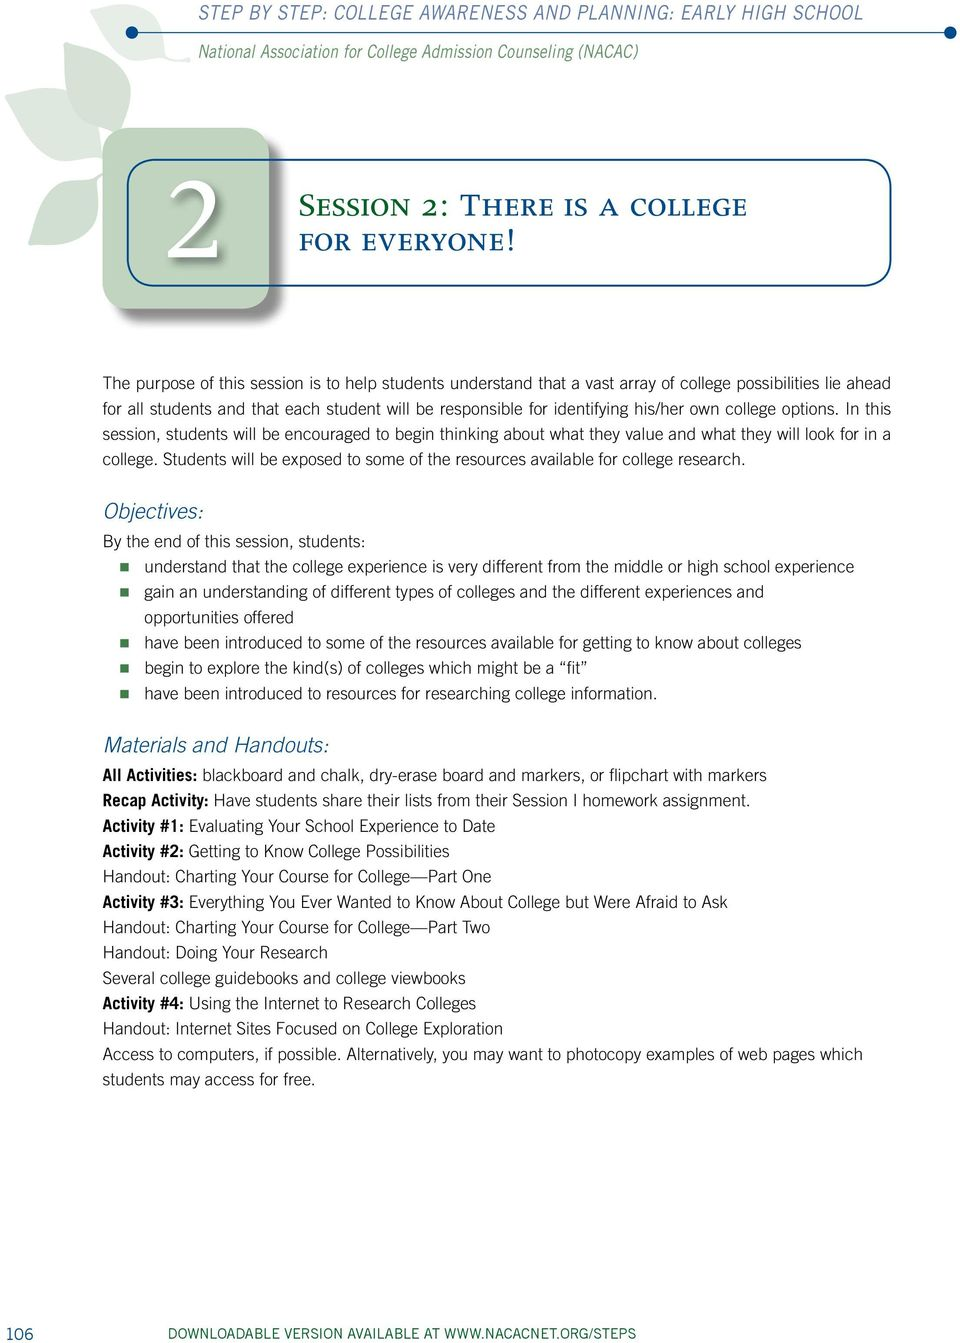 college options. In this session, students will be encouraged to begin thinking about what they value and what they will look for in a college.